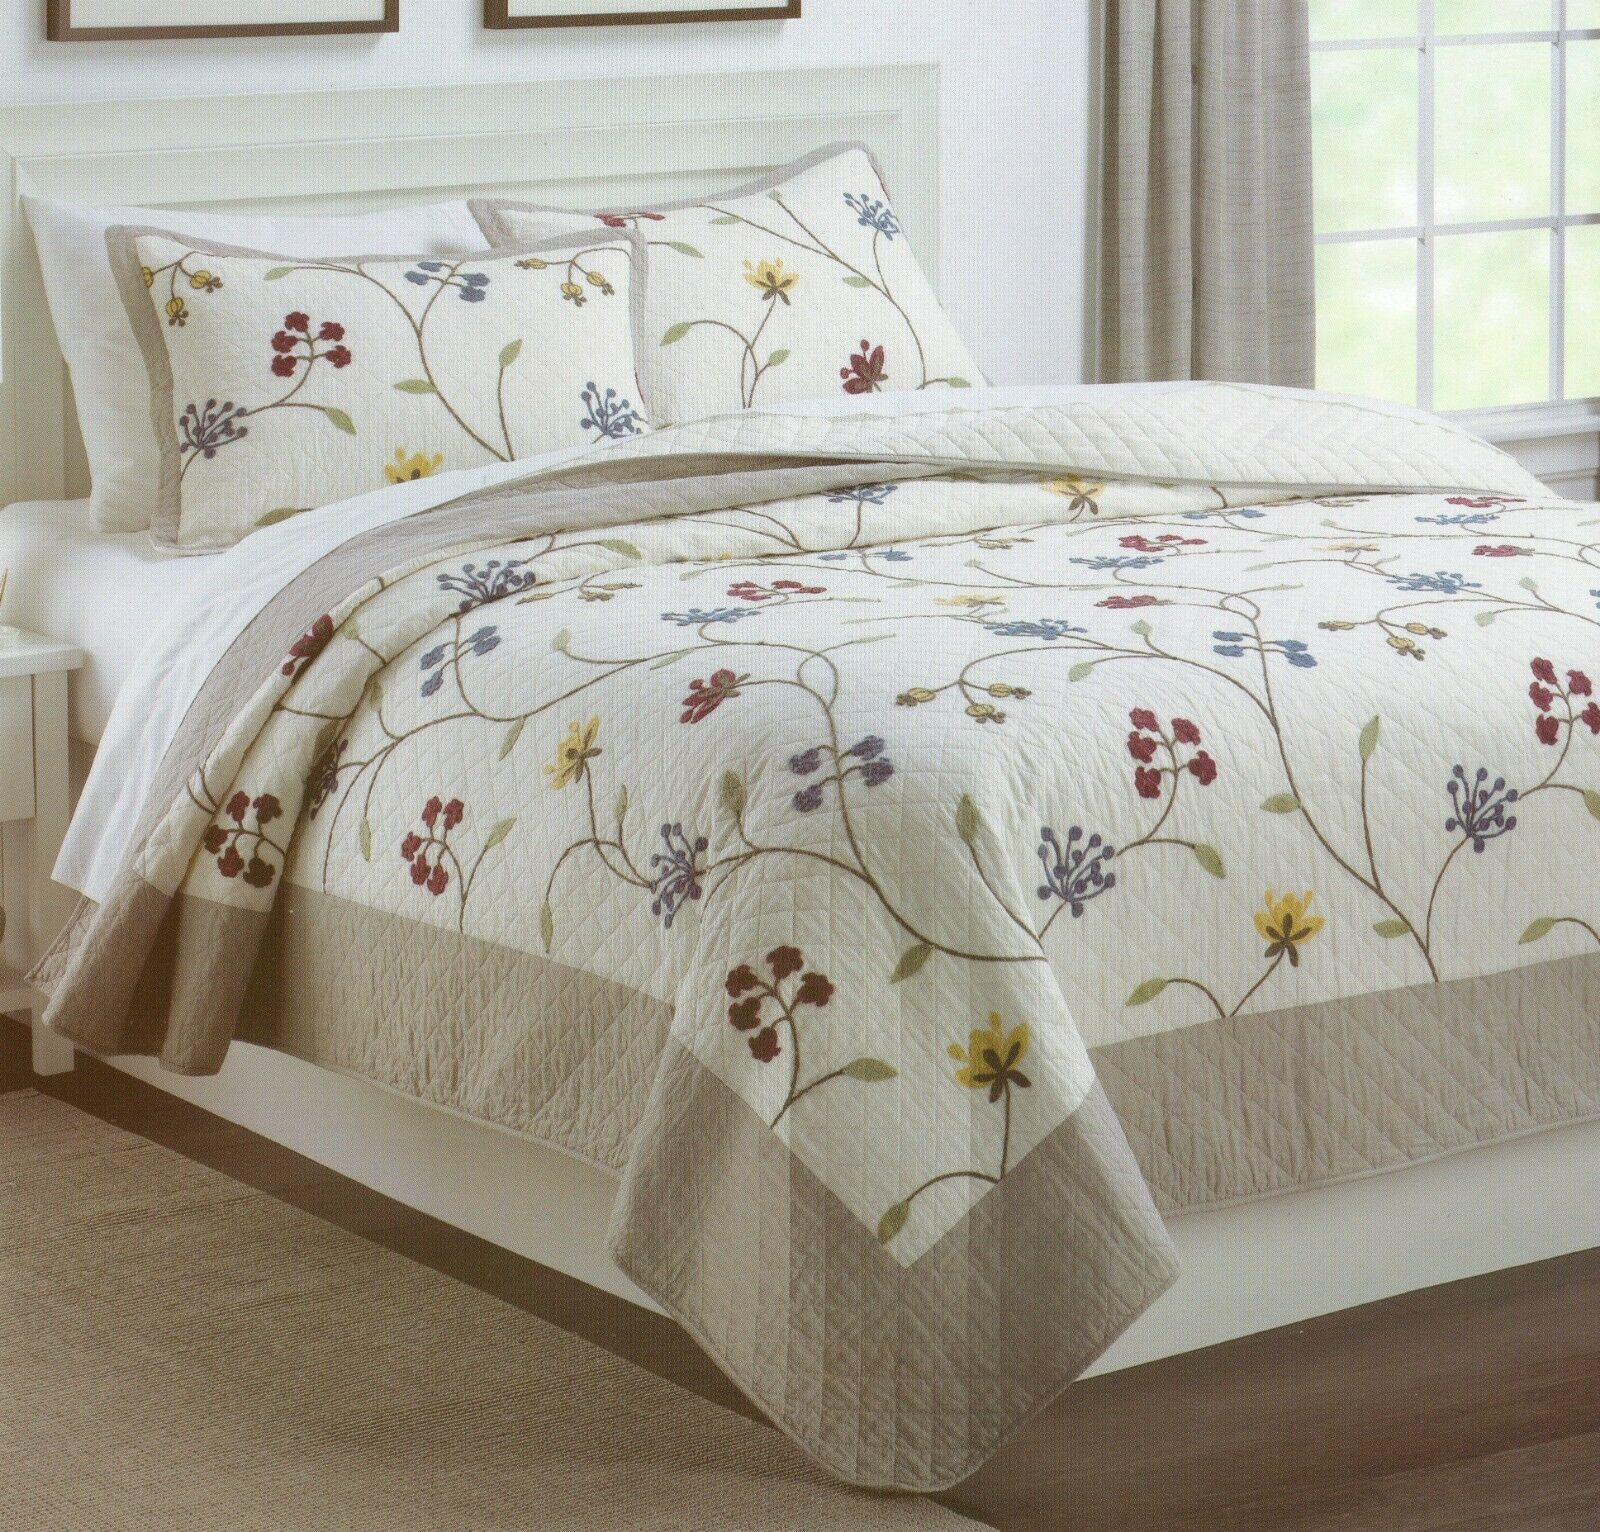 Nostalgia Provence Full Queen Quilt Heritage Home French Country Cottage Flowers